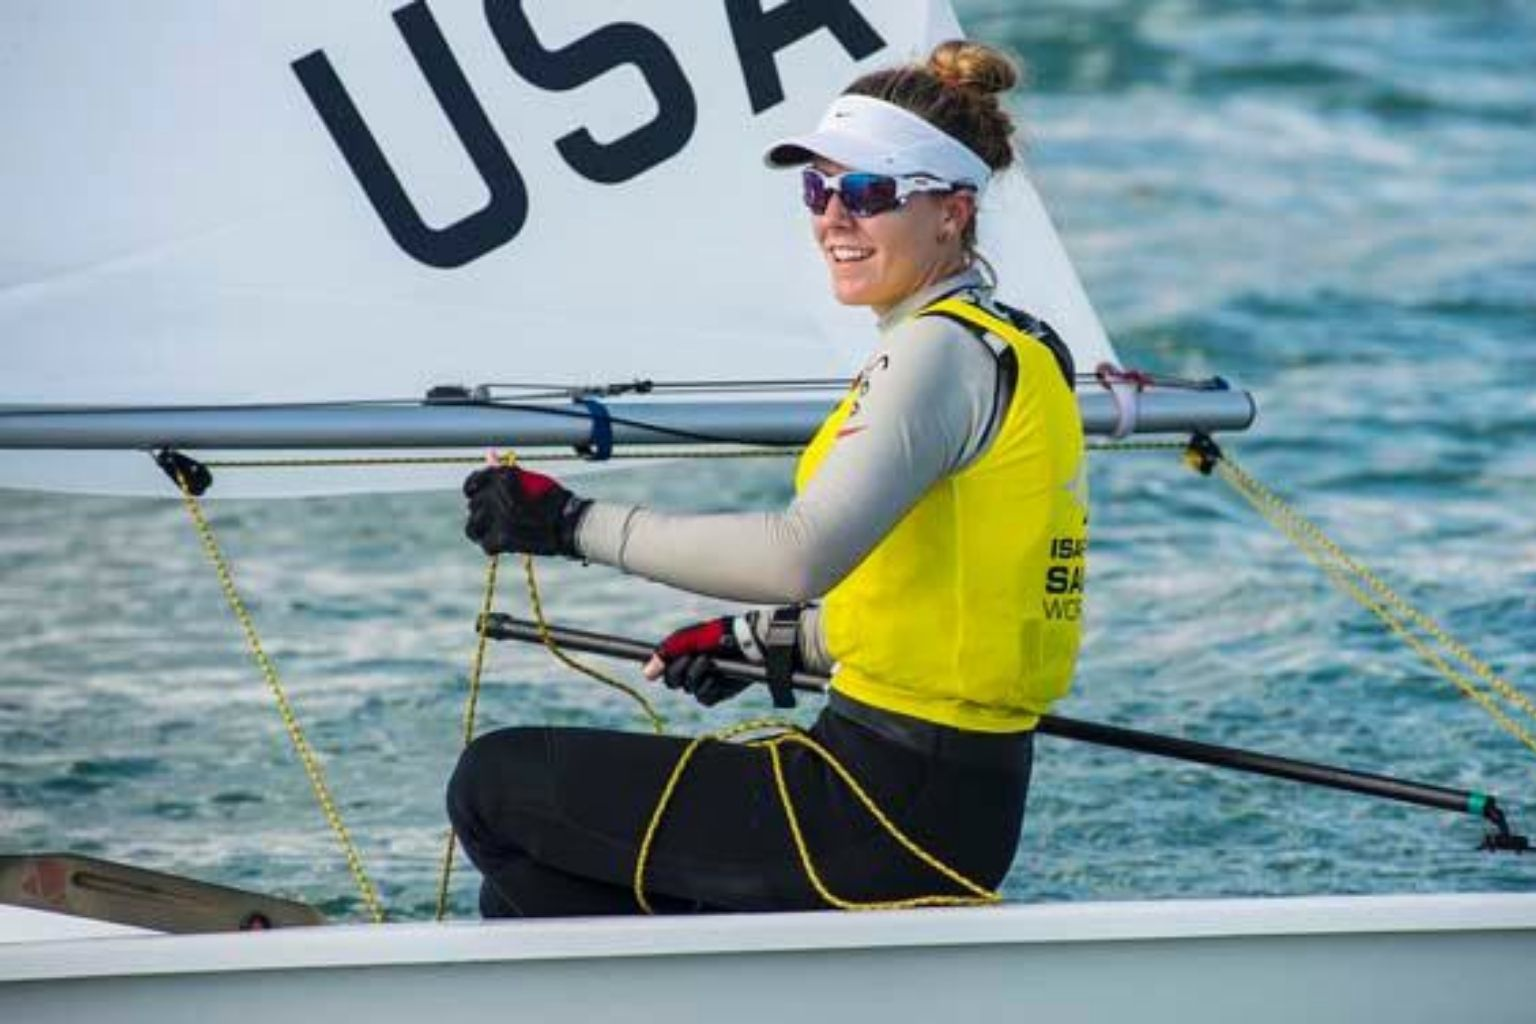 US Olympic sailor and Sailing performance athlete fitness paige Railey profile